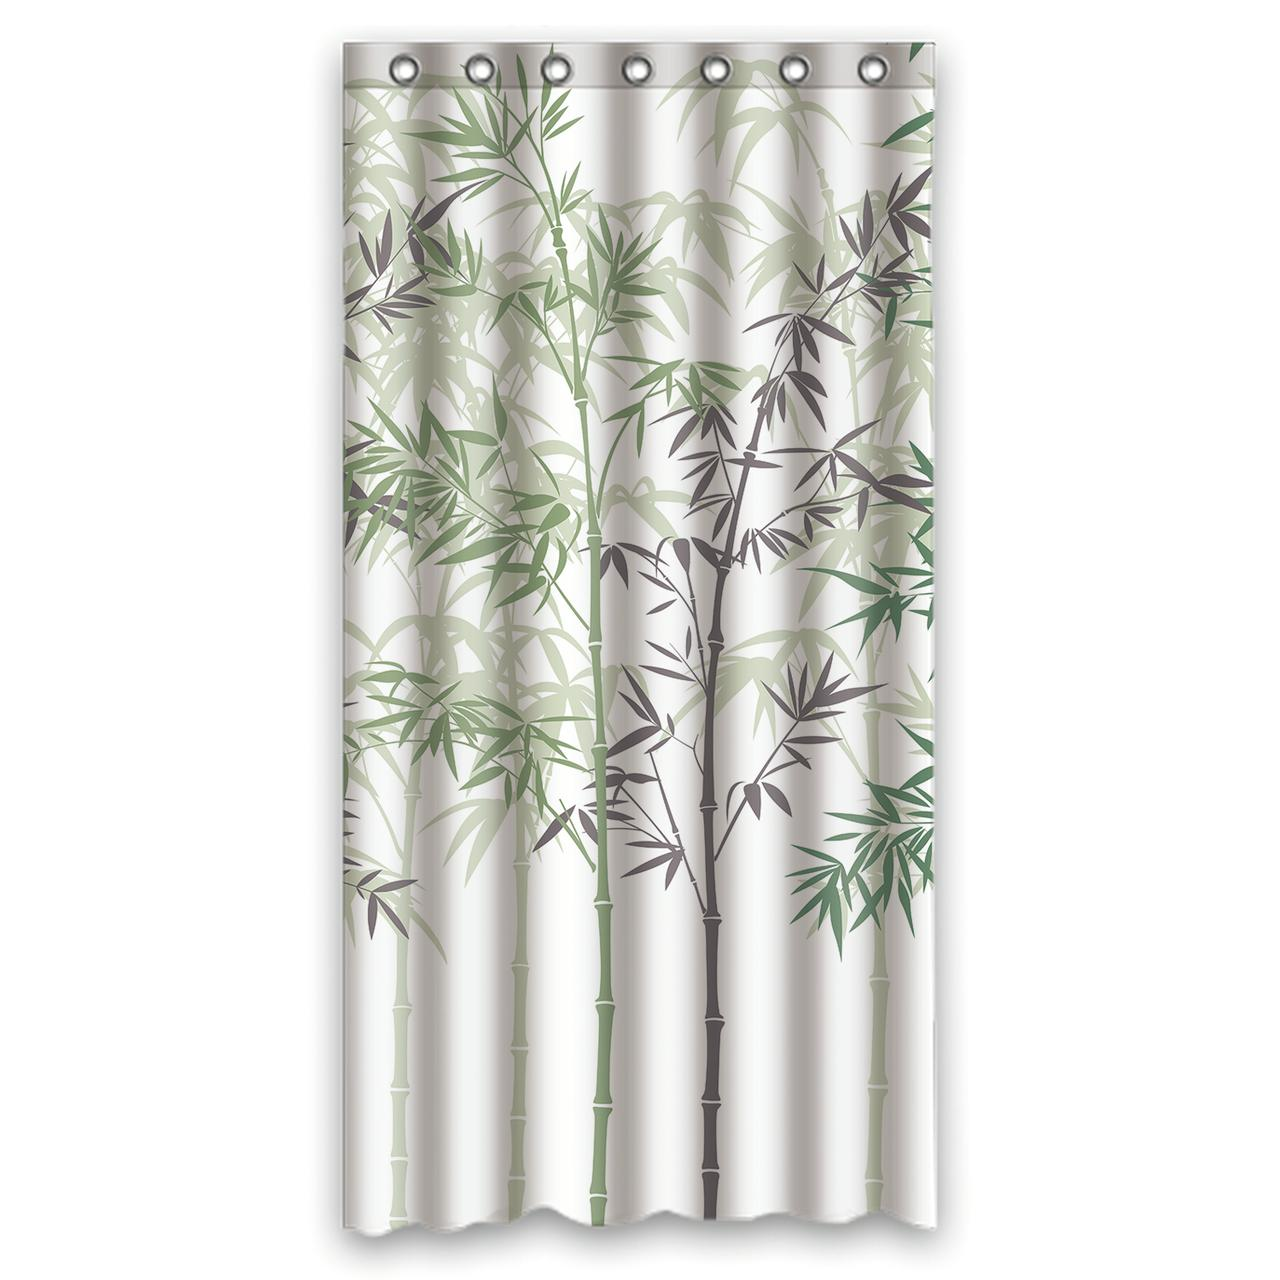 Ykcg Forest Painting Bamboo Shower Curtain Waterproof Fabric Bathroom Shower Curtain 36x72 Inches